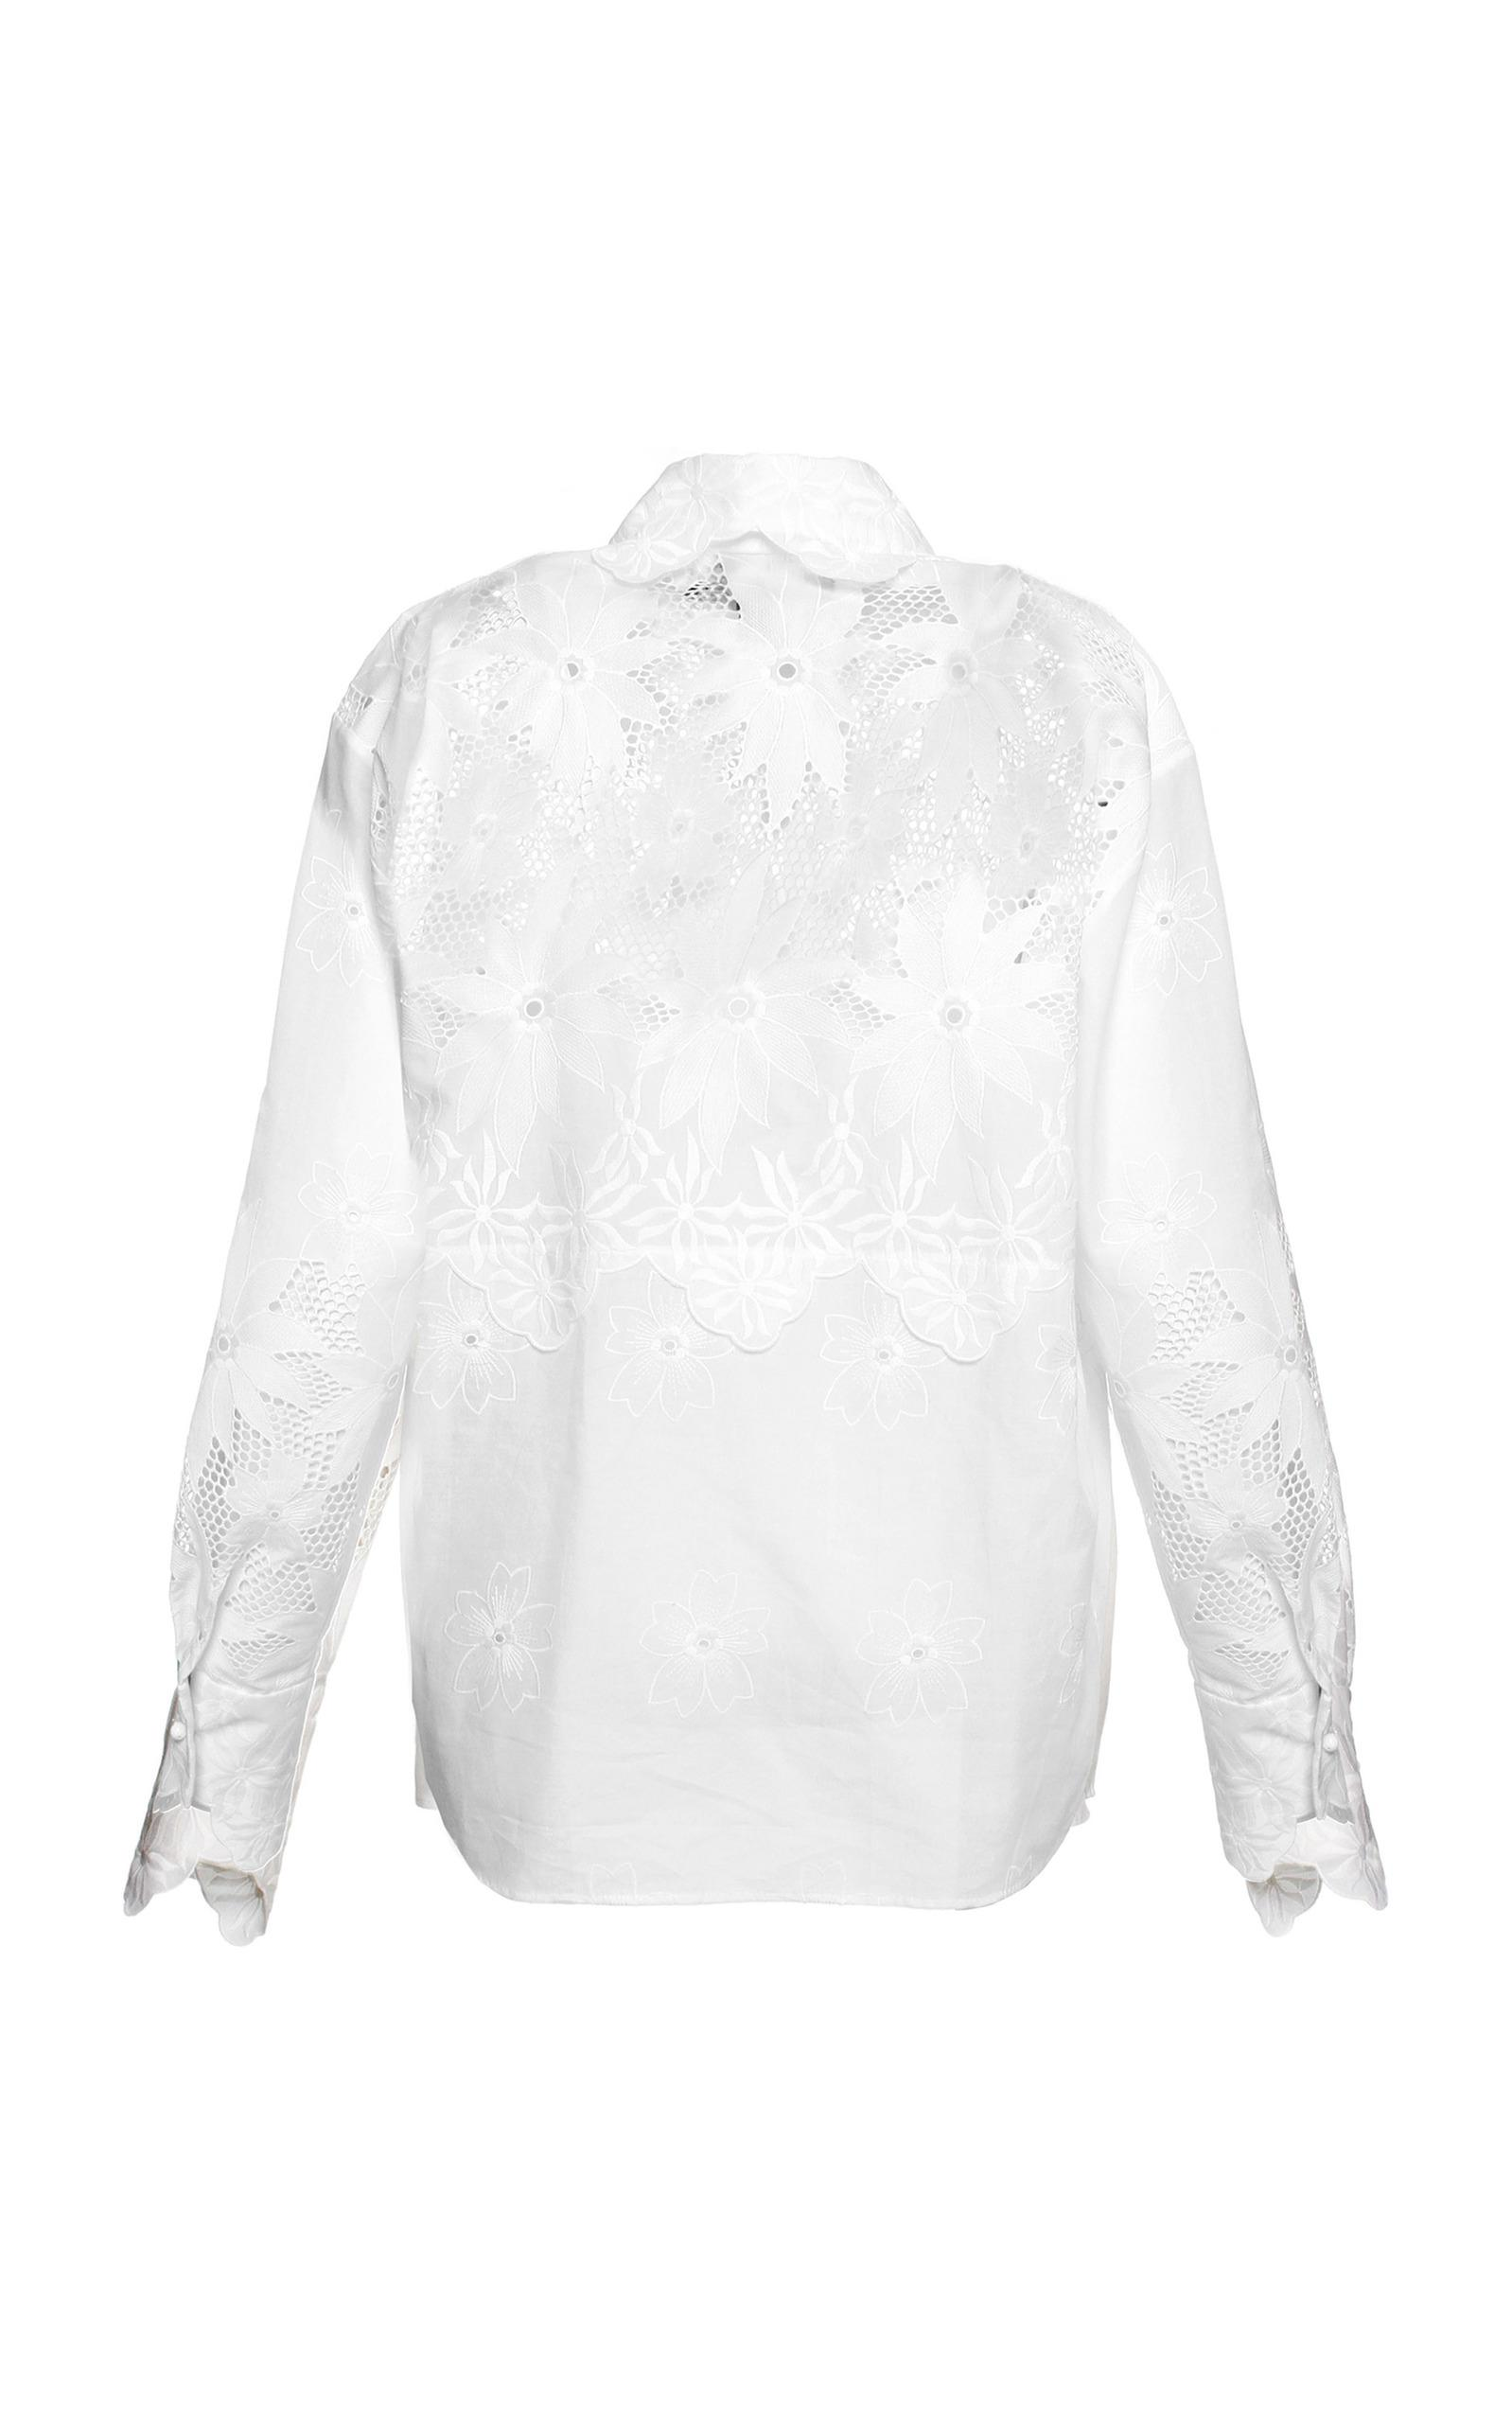 a158168014957 Lyst - ANOUKI White Lace Shirt in White